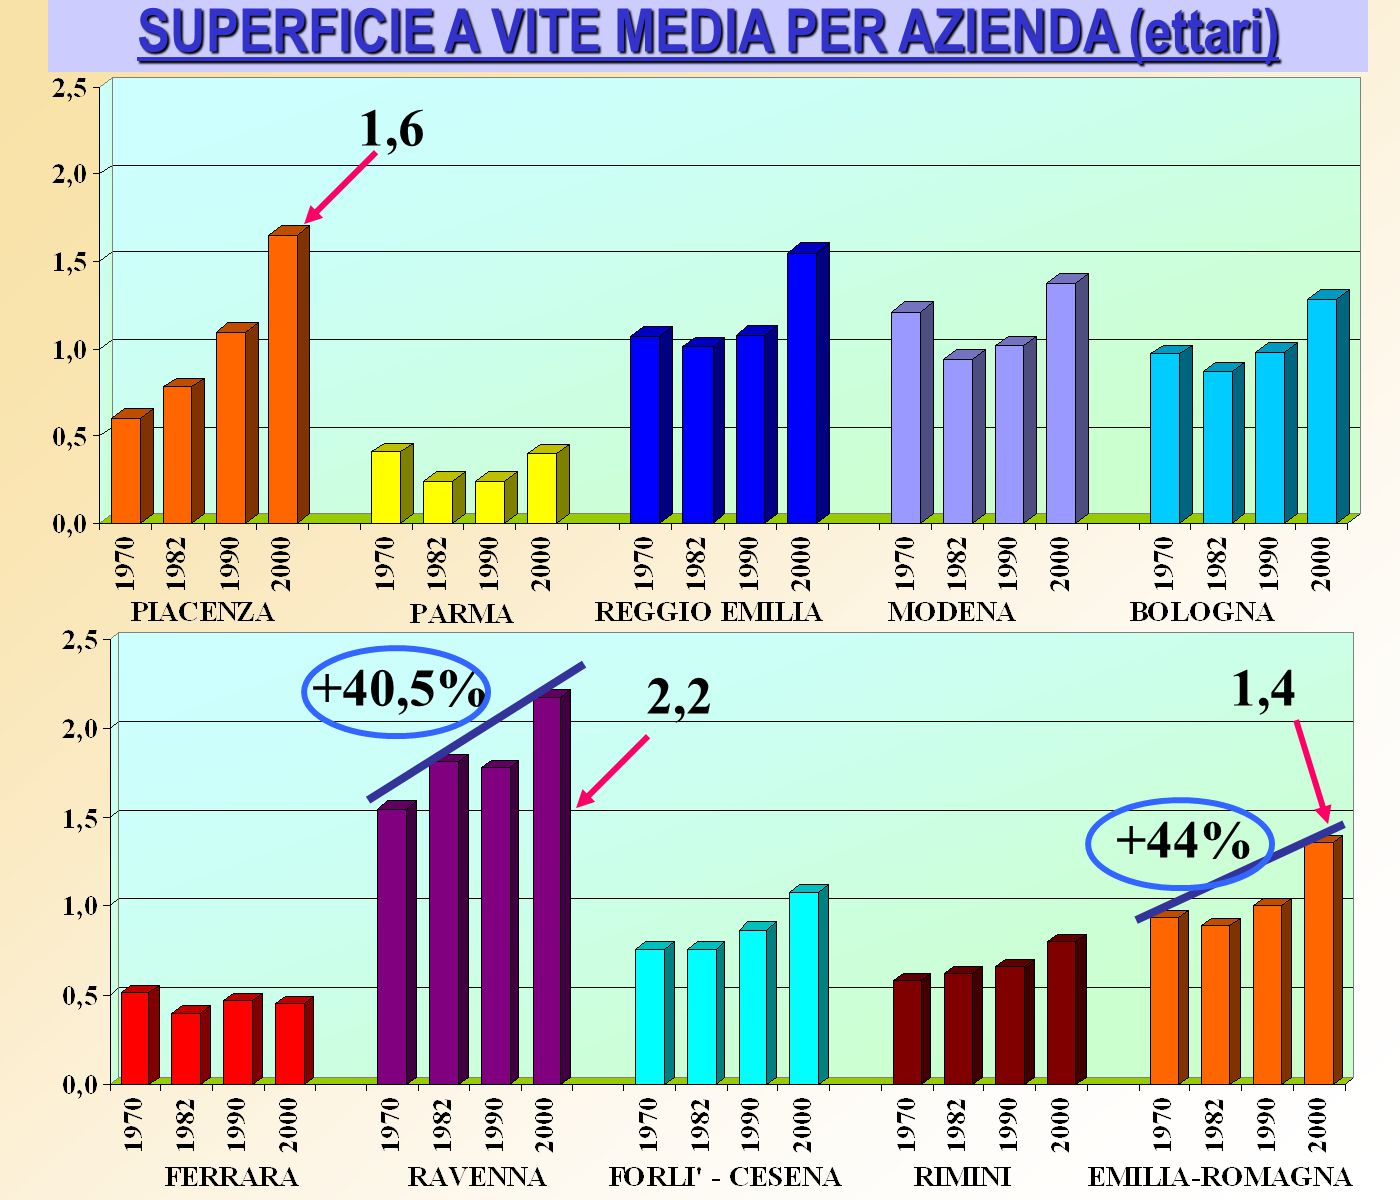 SUPERFICIE A VITE MEDIA PER AZIENDA (ettari) +40,5% +44% 1,6 2,2 1,4